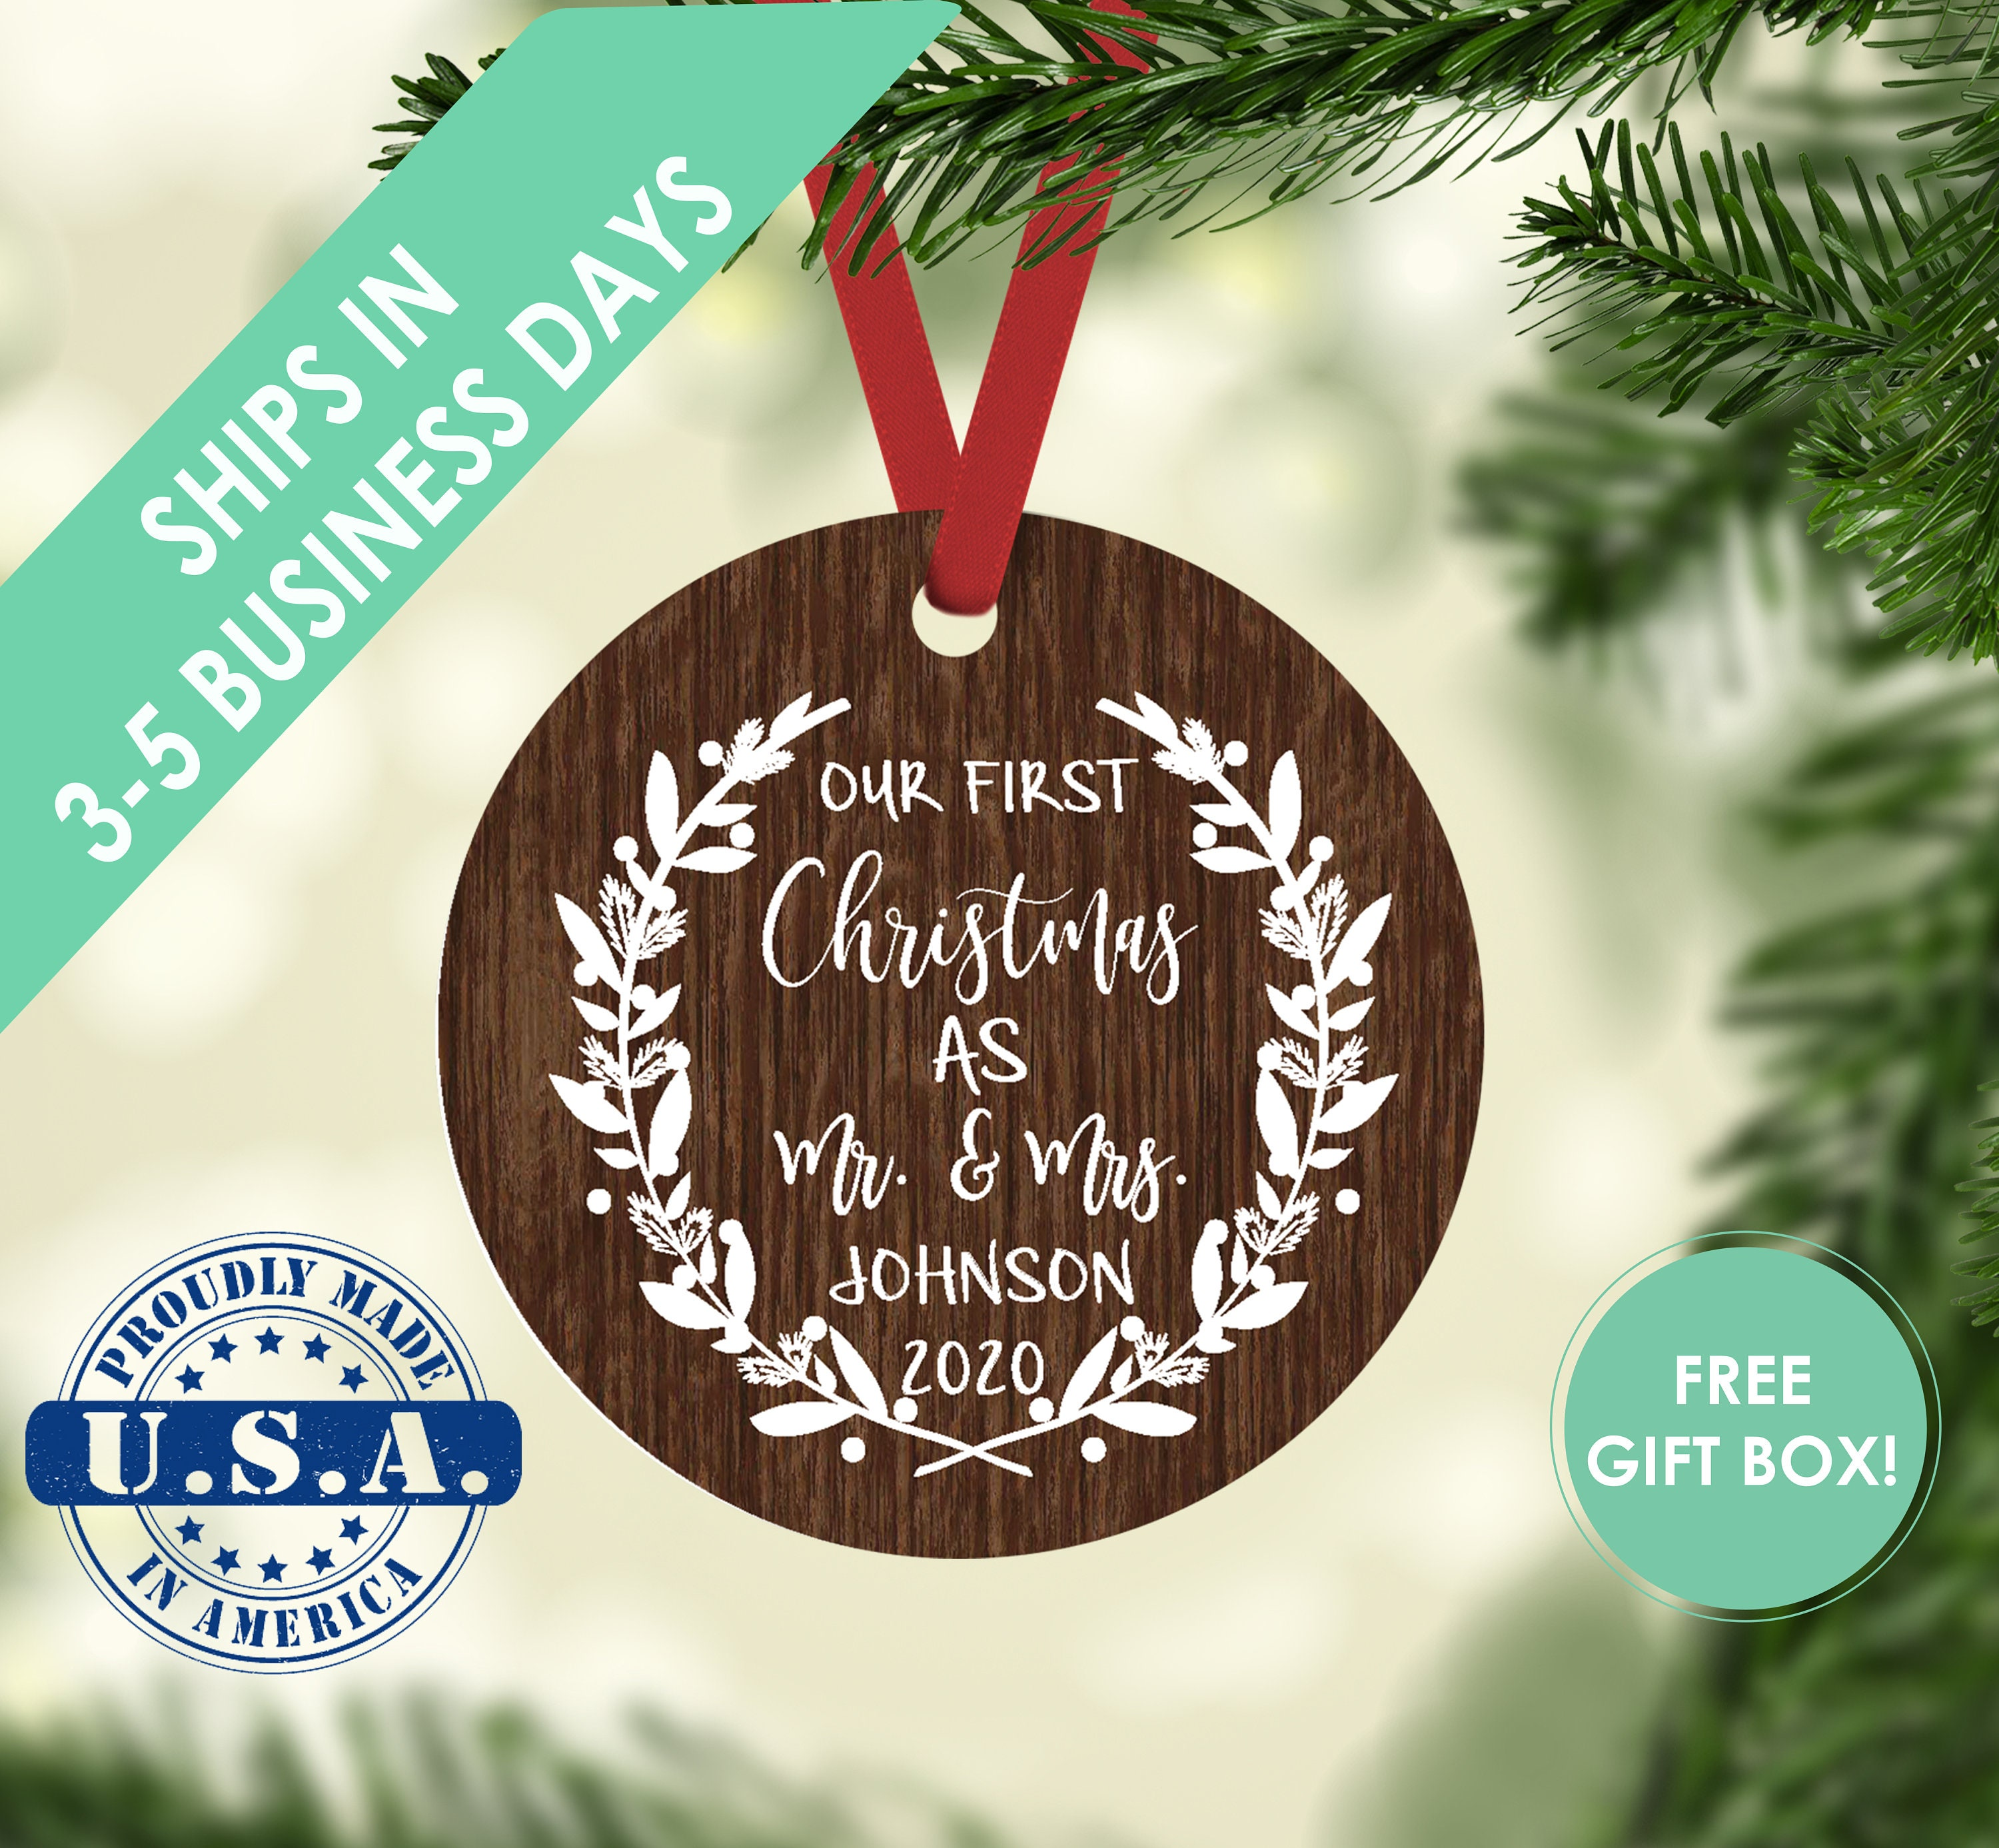 Personalised Ornament Personalized Just Married Ornament Christmas Ornaments Married Ornament Personalized Mr /& Mrs Christmas Ornament